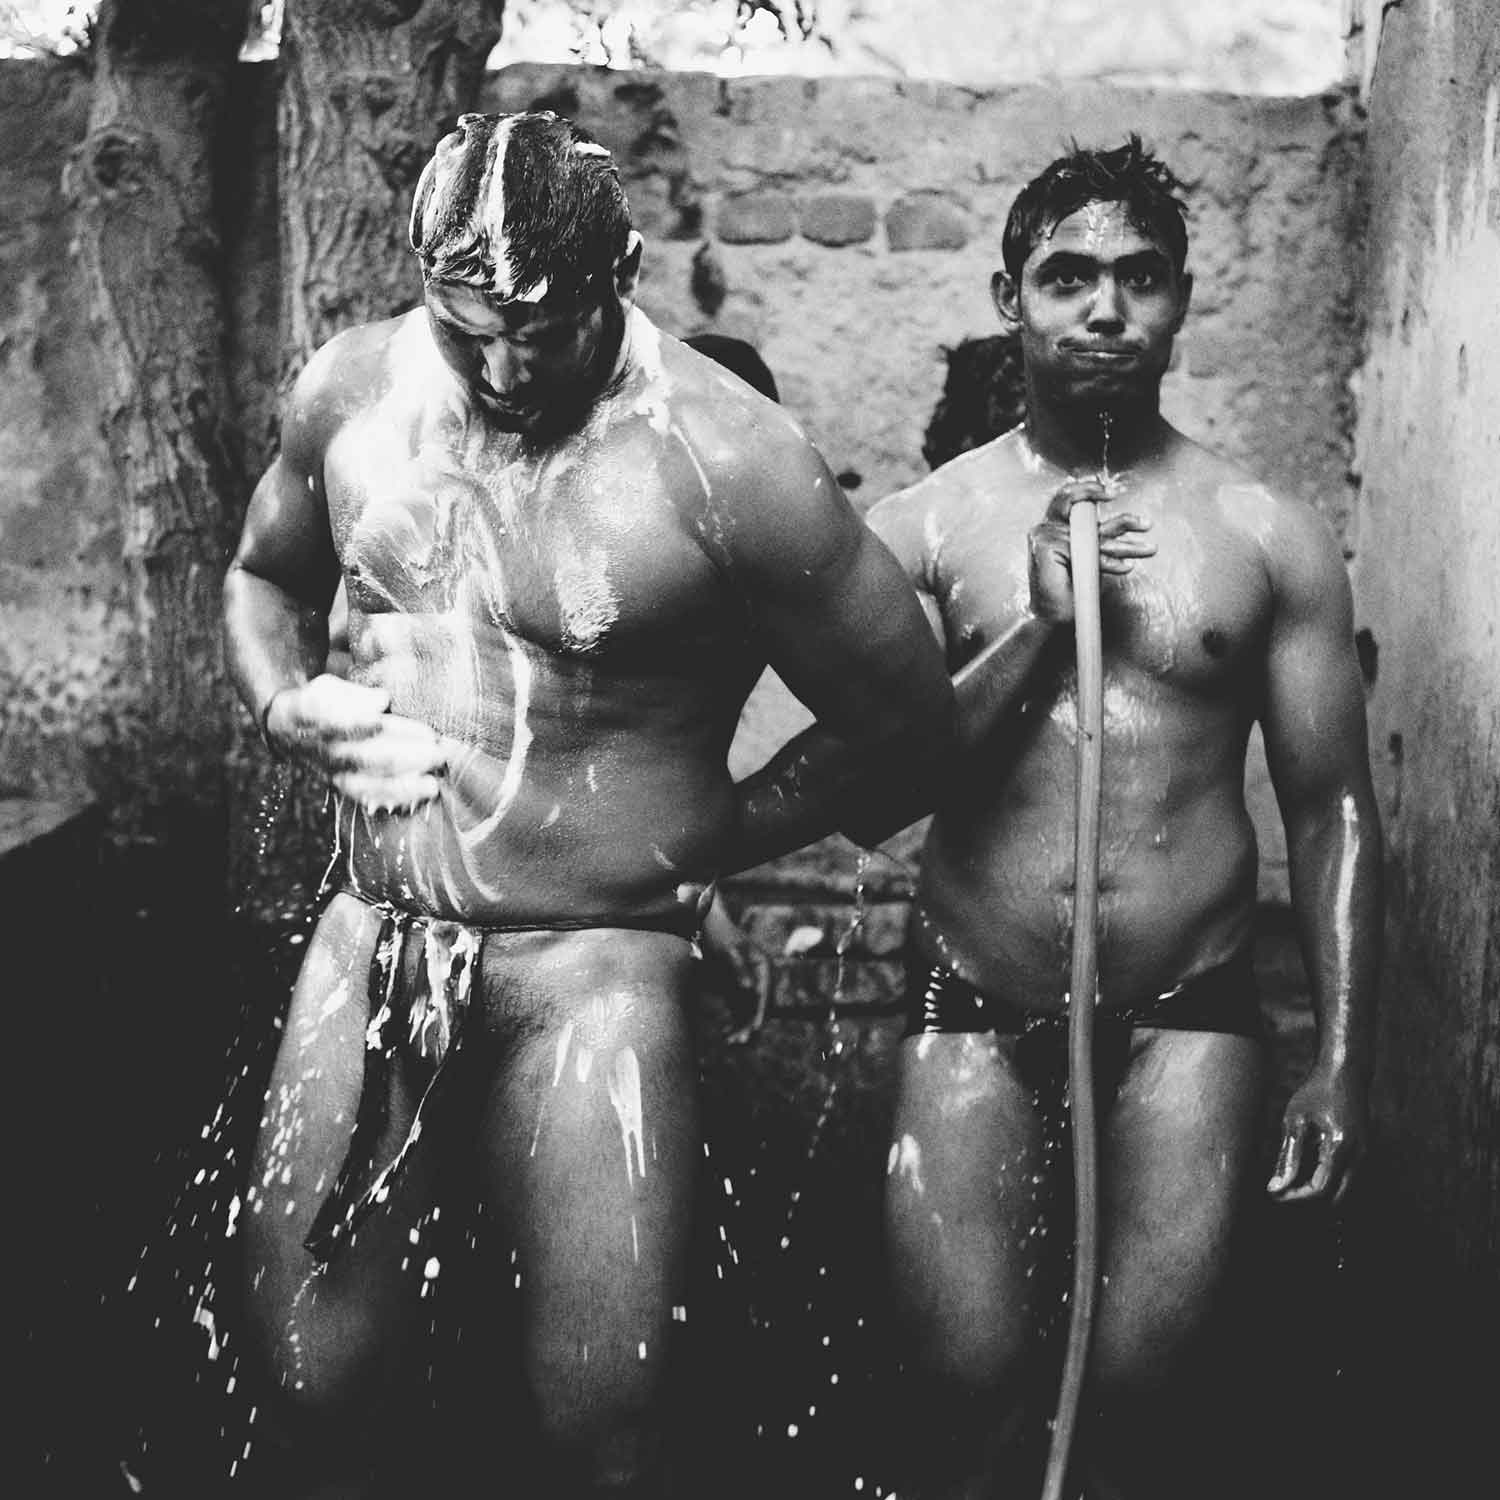 Bathing Wrestlers In A Delhi Akhara-7415